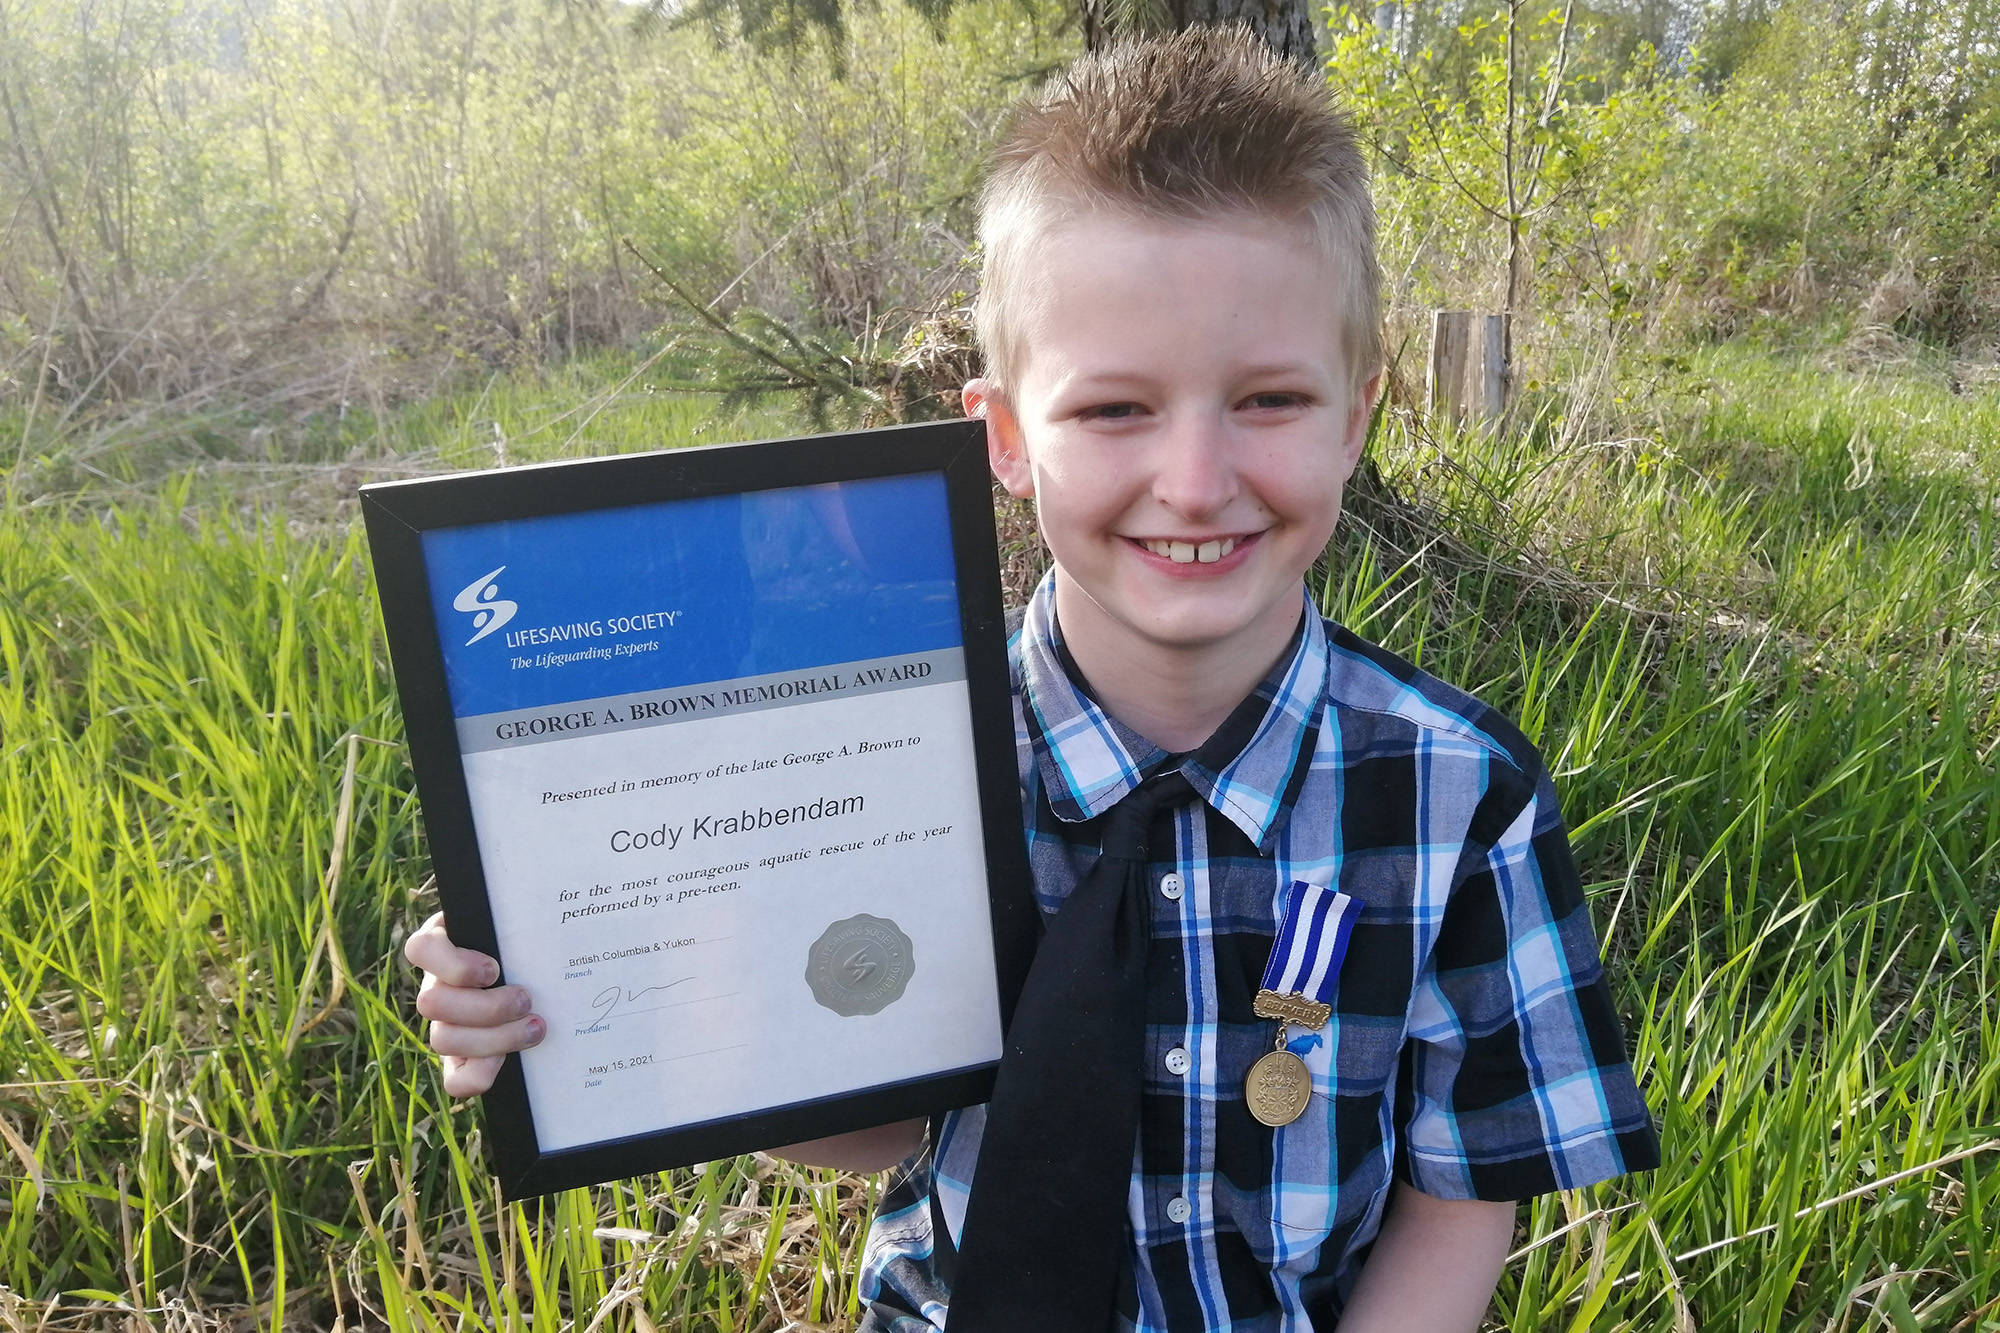 Ranchero resident Cody Krabbendam proudly displays the Lifesaving Society awards he recently received for a rescuing another boy while swimming at Sicamous Beach in July 2020. (Contributed)